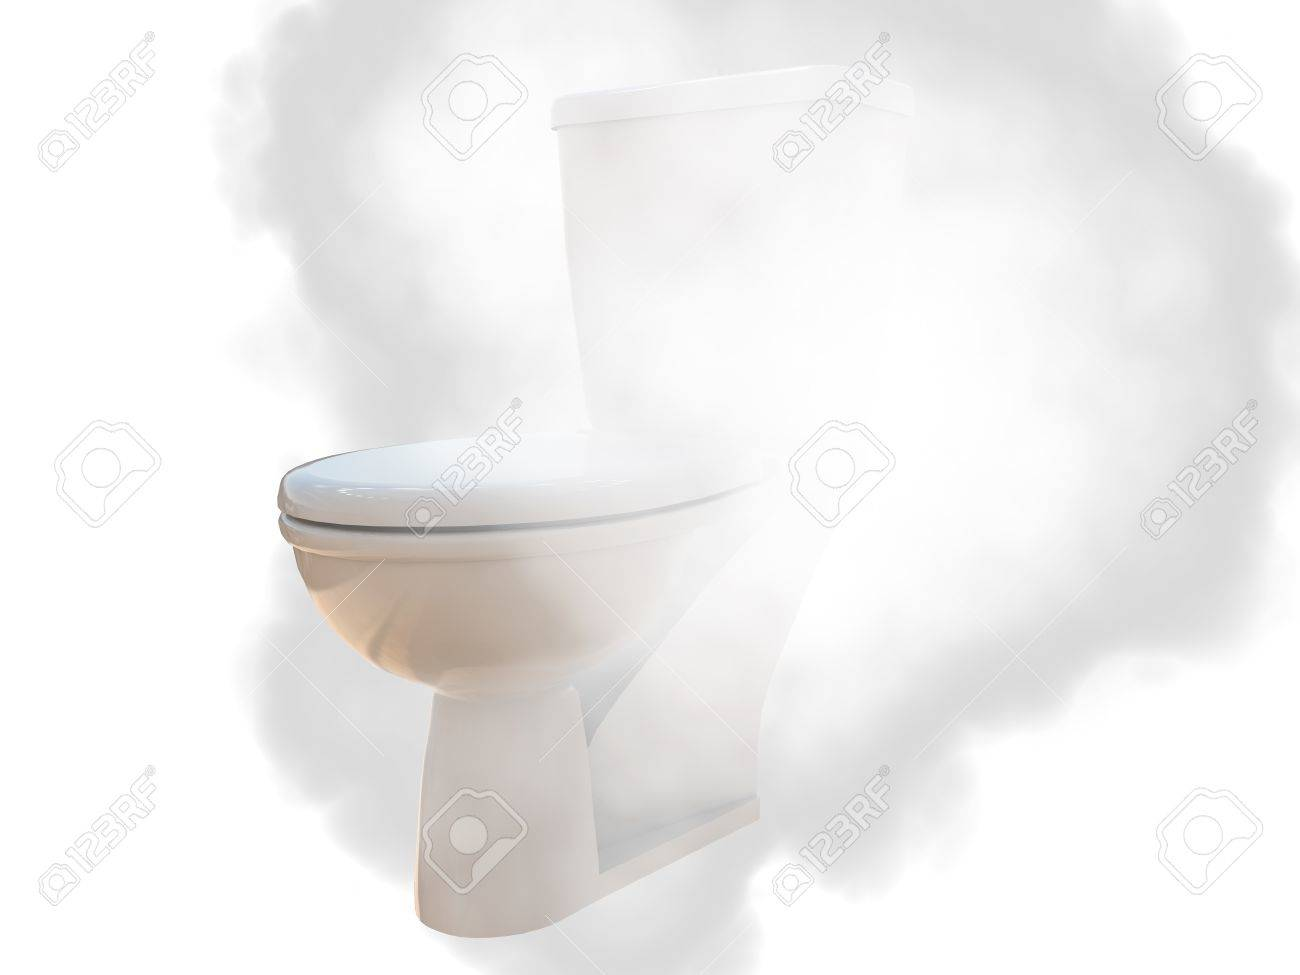 ceramic wc on fire isolated on white background Stock Photo - 11933506